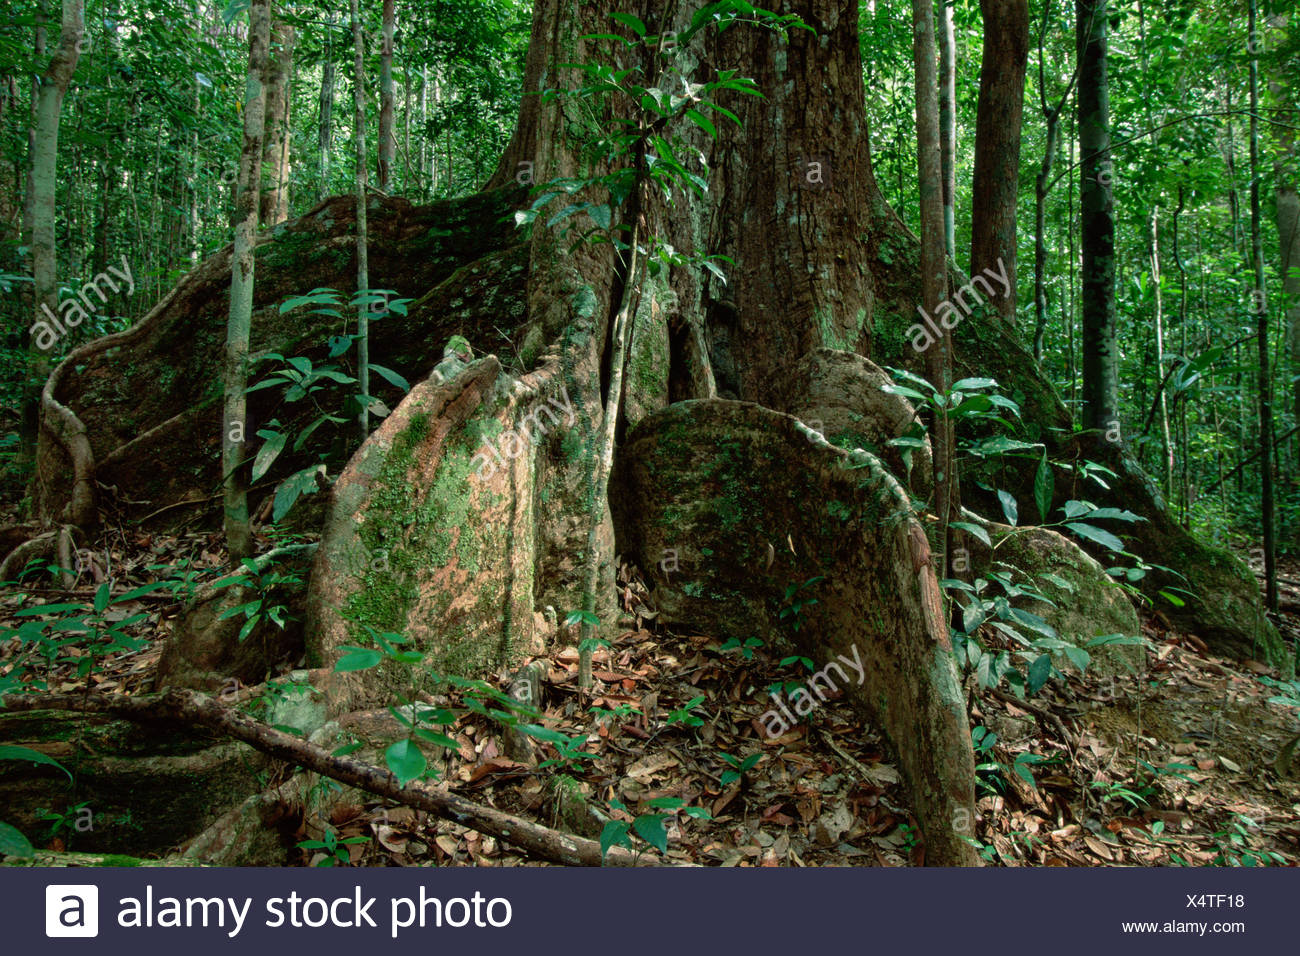 A rainforest tree with large buttresses. Gunung Palung National Park, Borneo, Indonesia. - Stock Image